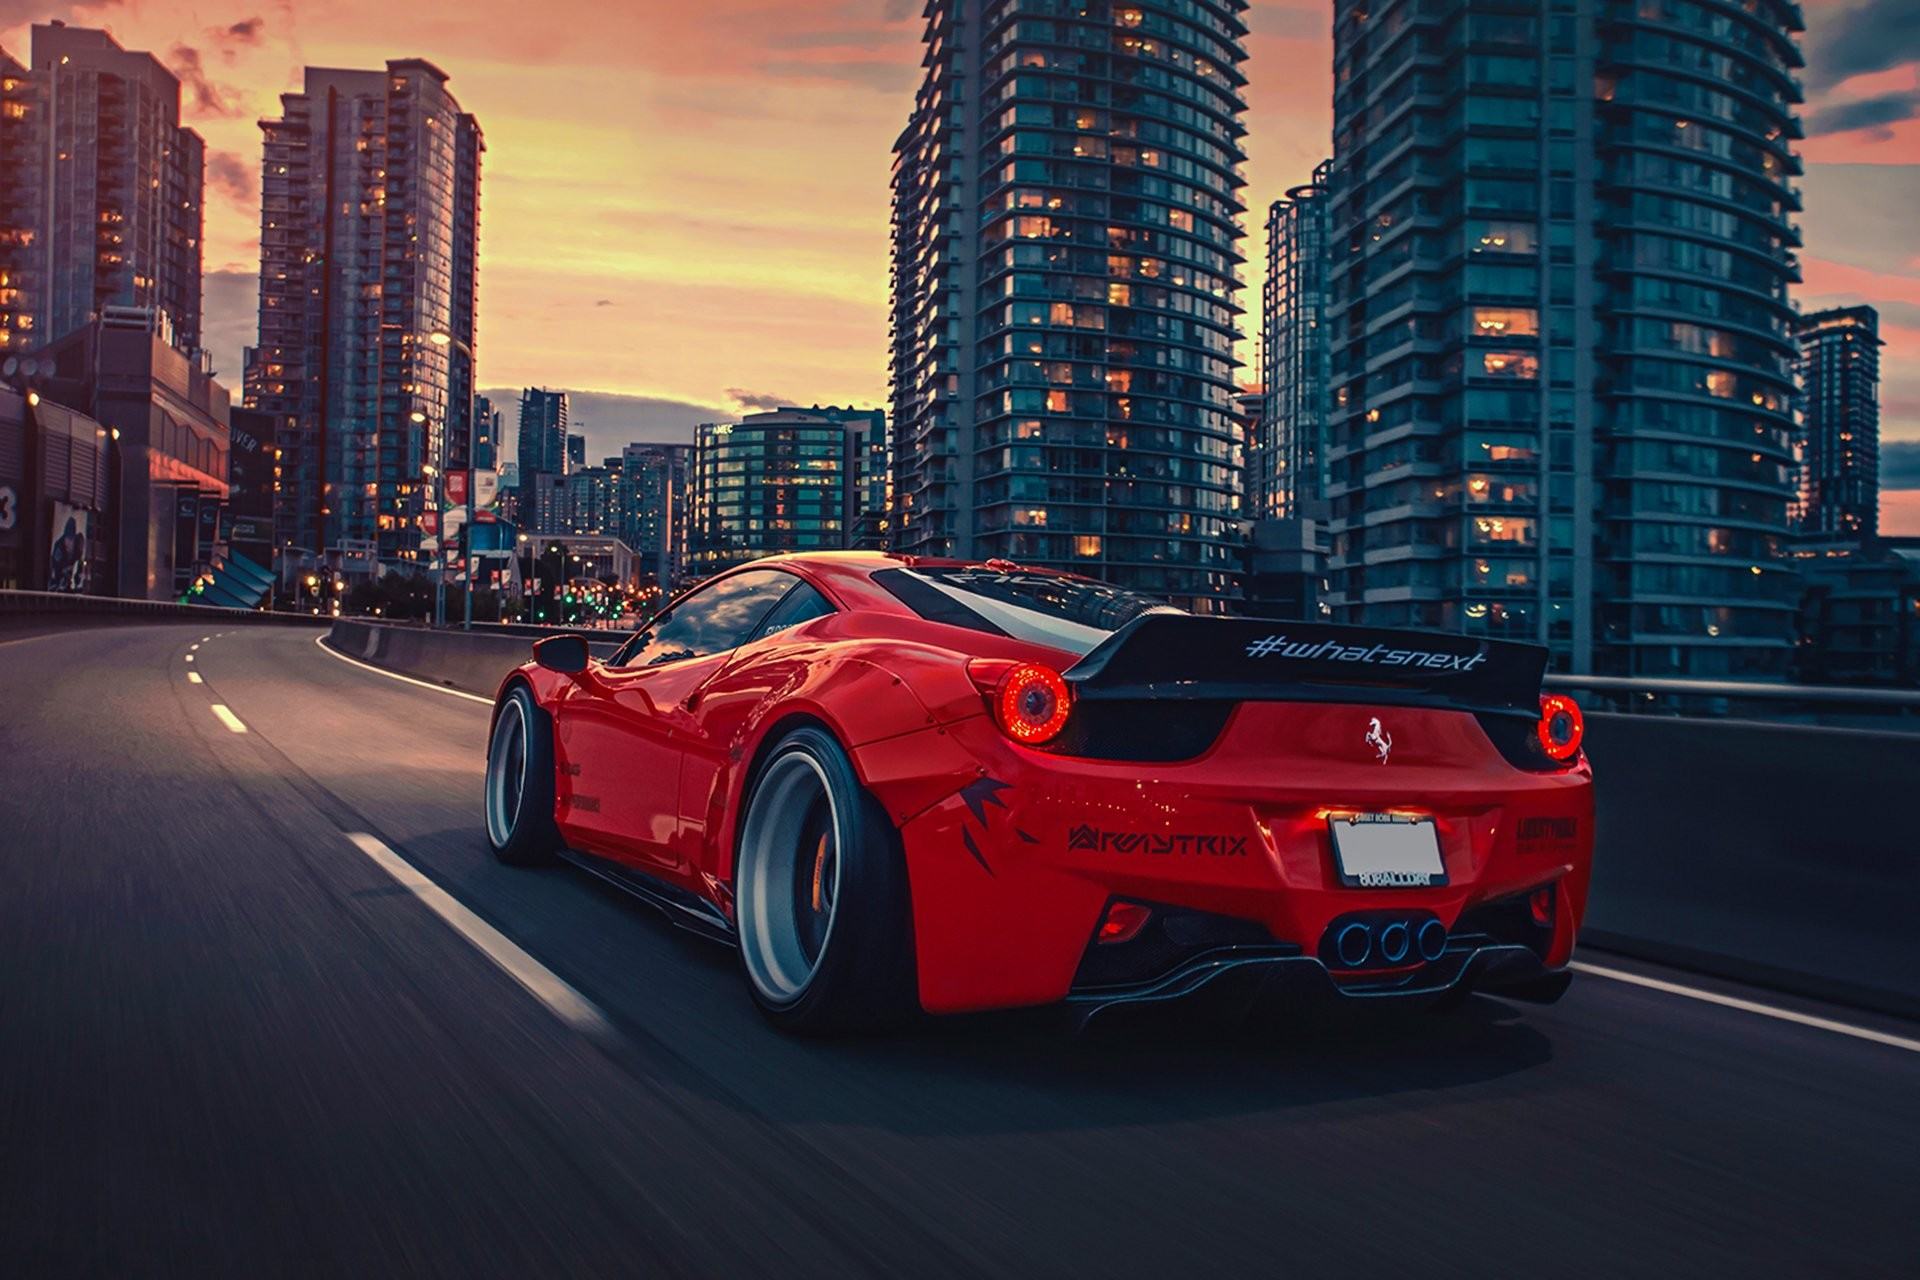 free download hd car wallpapers for windows 7